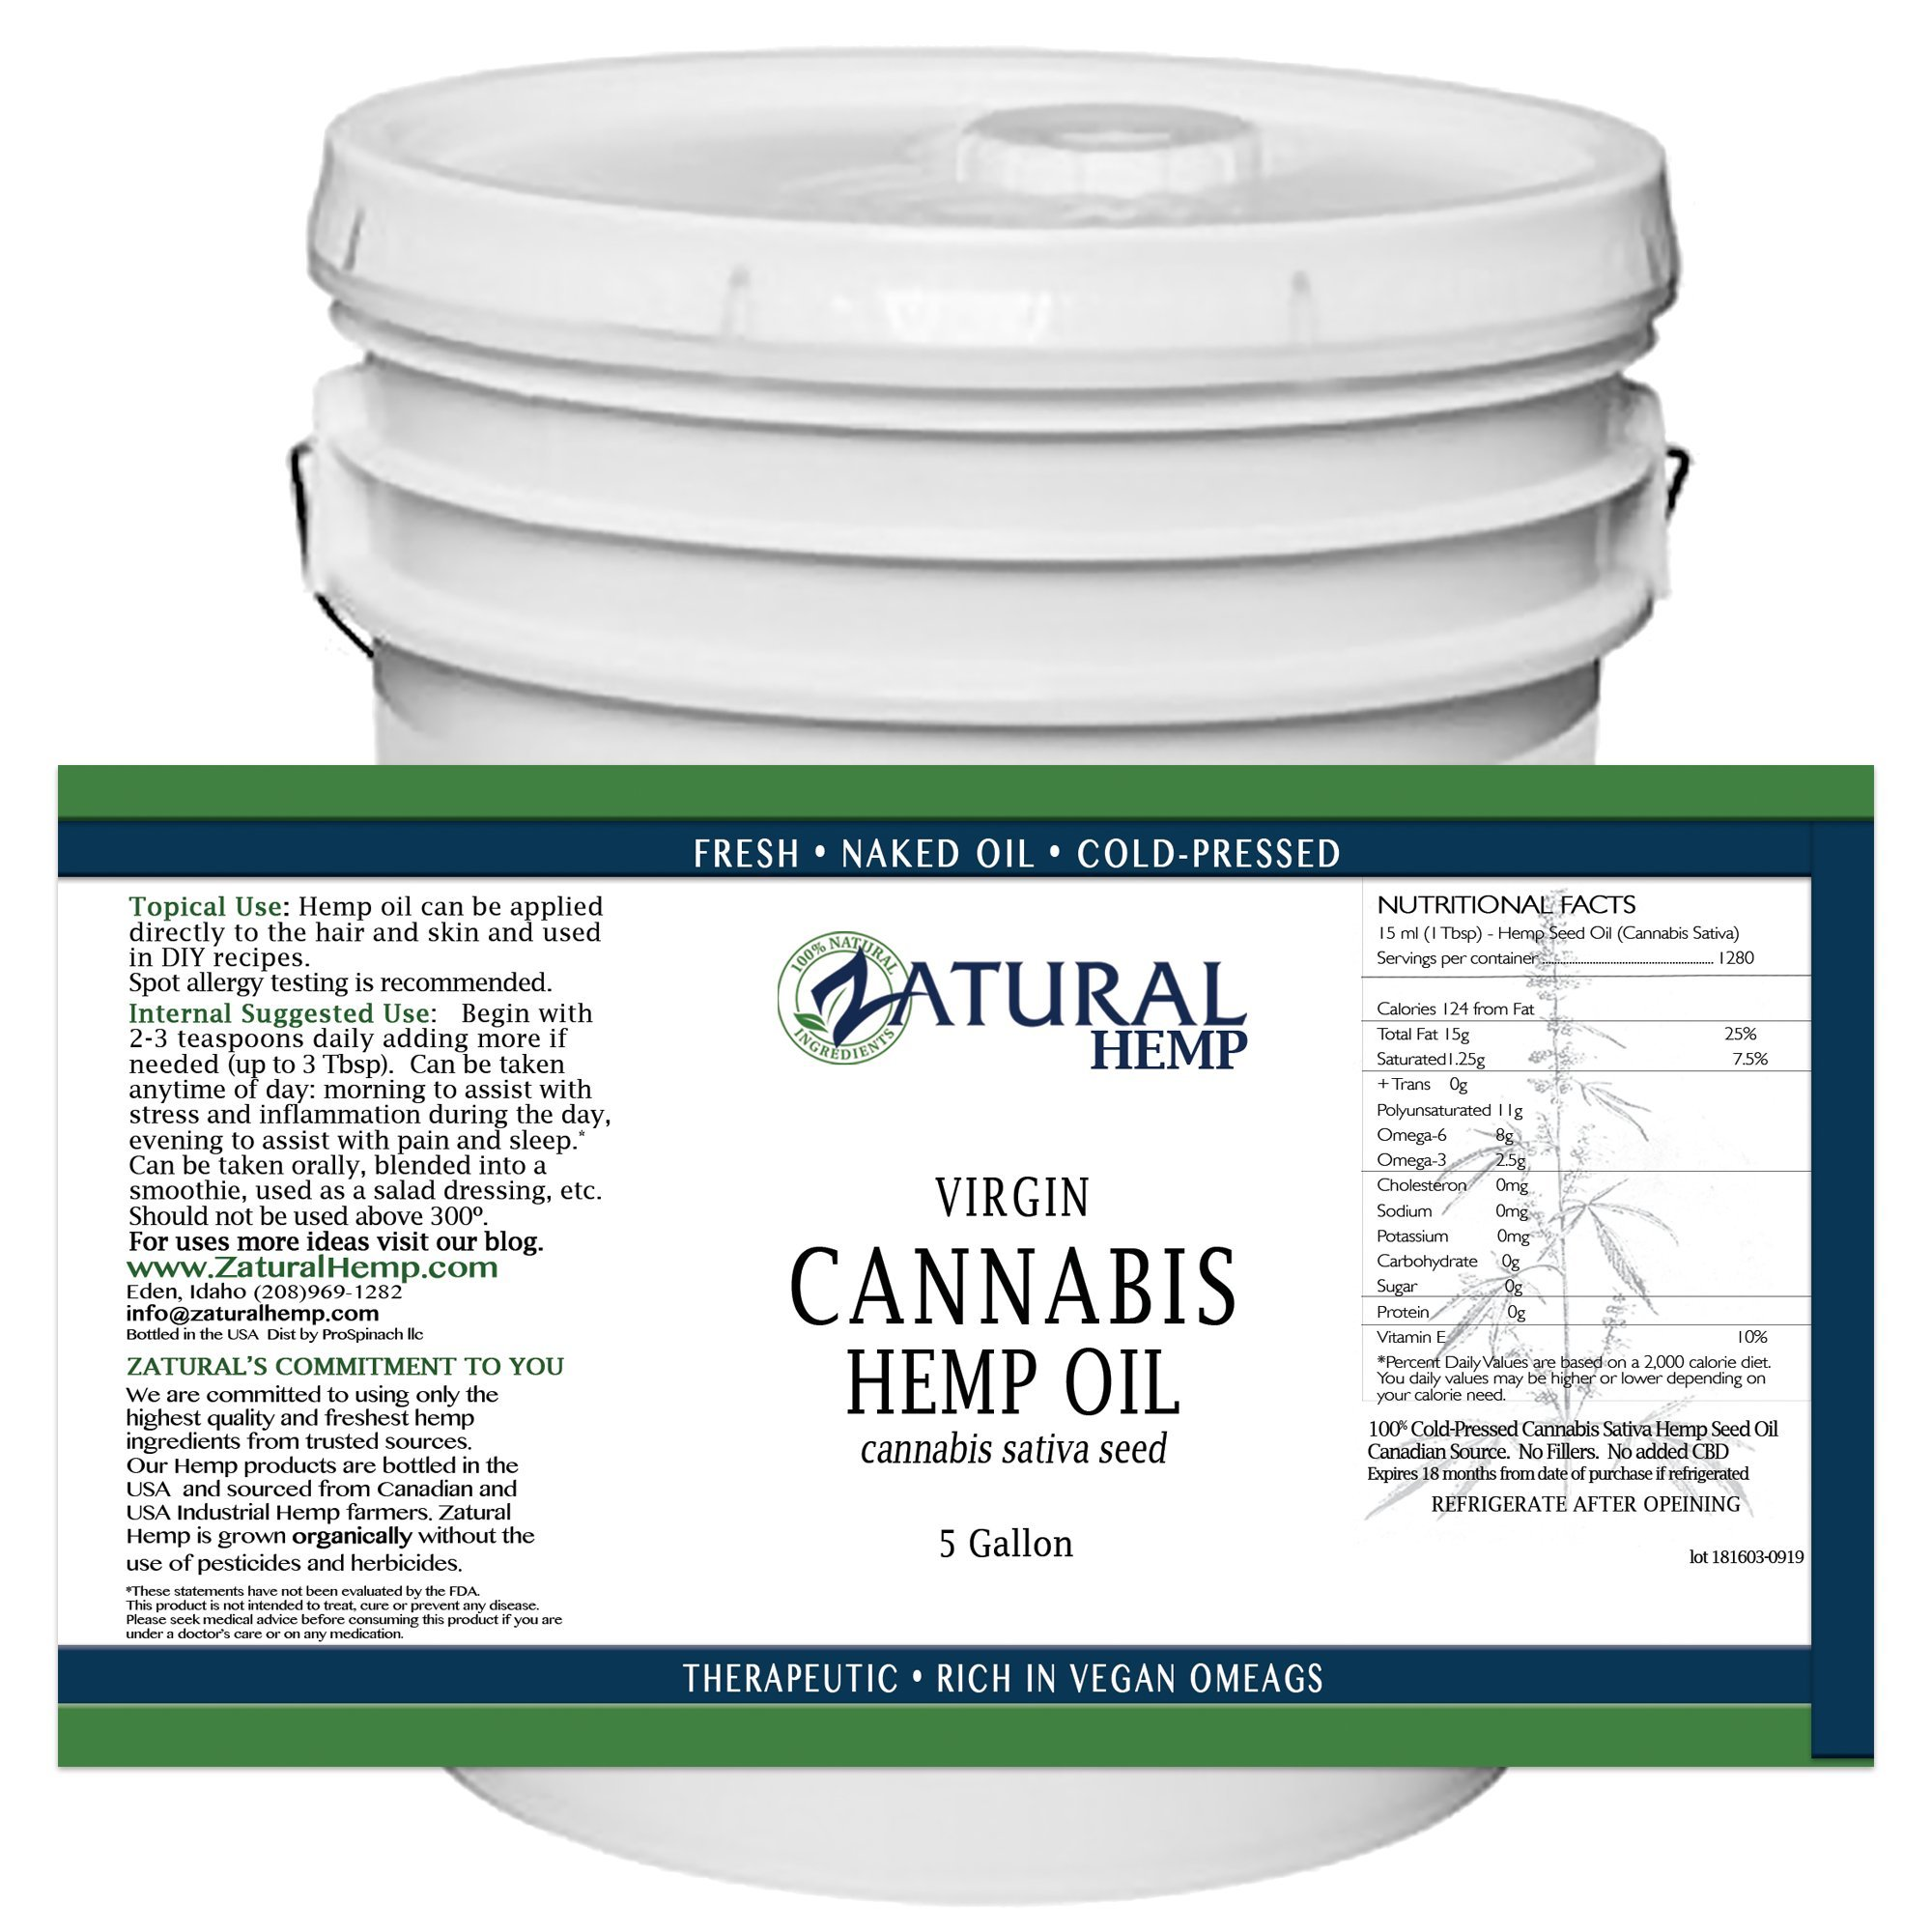 Hemp Oil Anti-Inflammatory_Pain Relief_100% Pure_Cold Pressed_High Vegan Omegas 3 & 6_No Fillers or Additives, Therapeutic Grade (16 Ounce) (16 Ounce) (640 Ounce (5 Gallon))